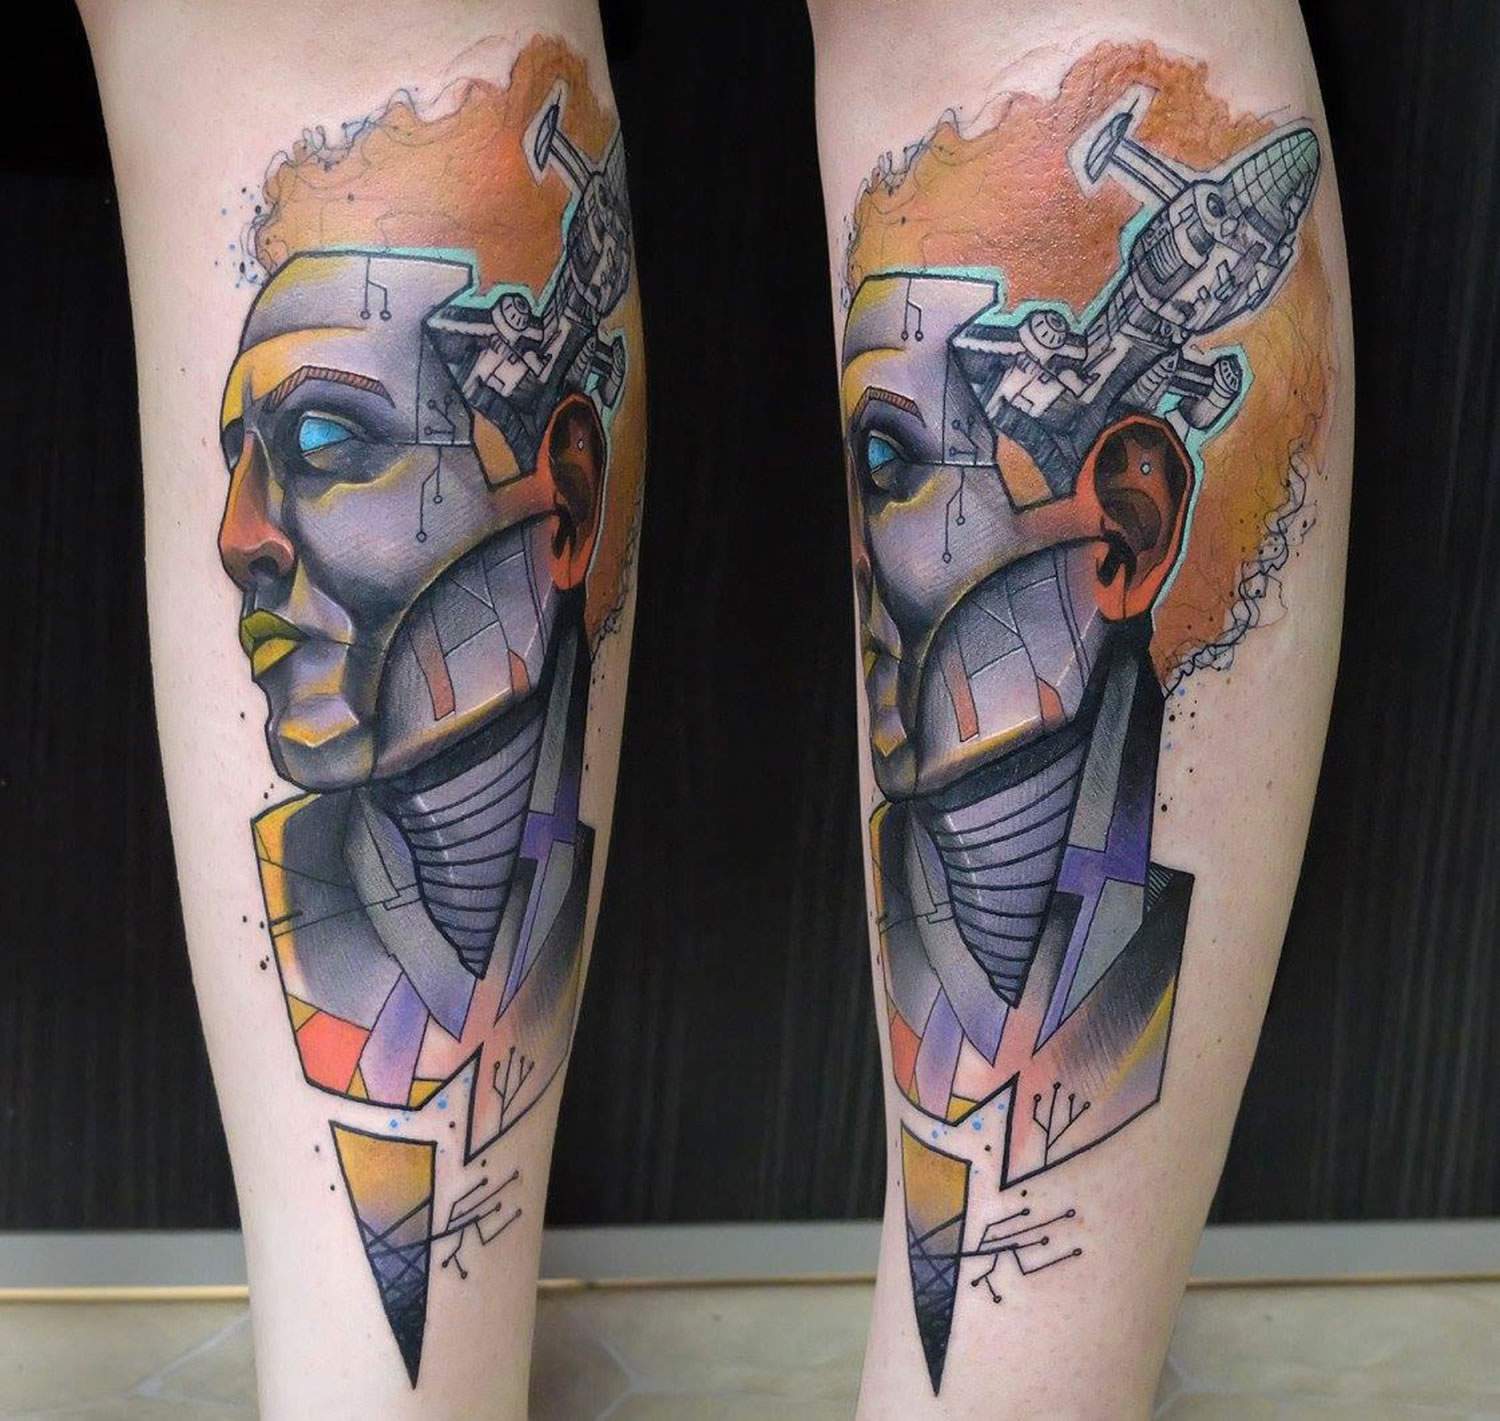 portrait tattoo in two views by elschwino